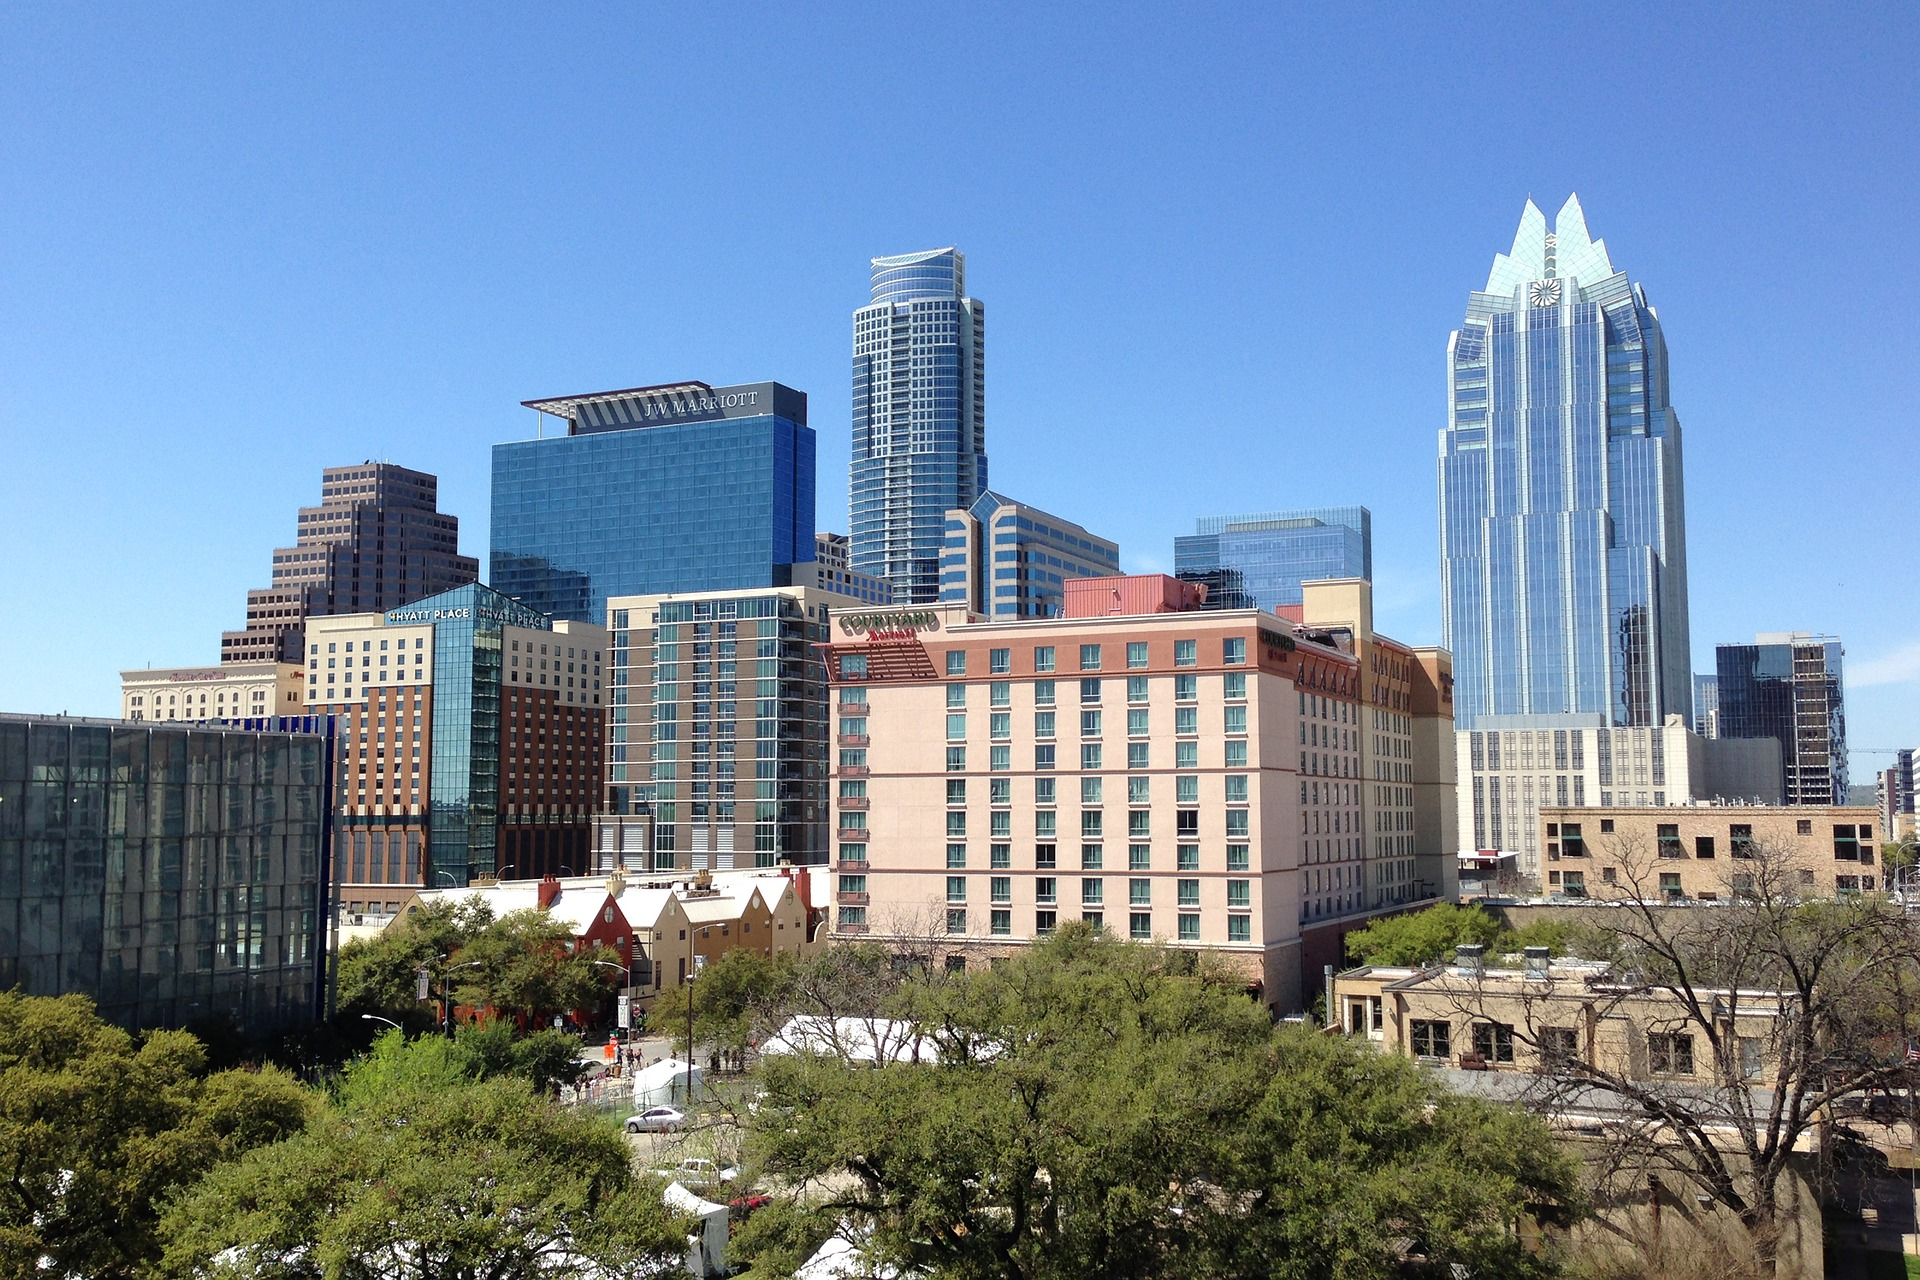 Looking for a litigation support austin firm? look no furhter!